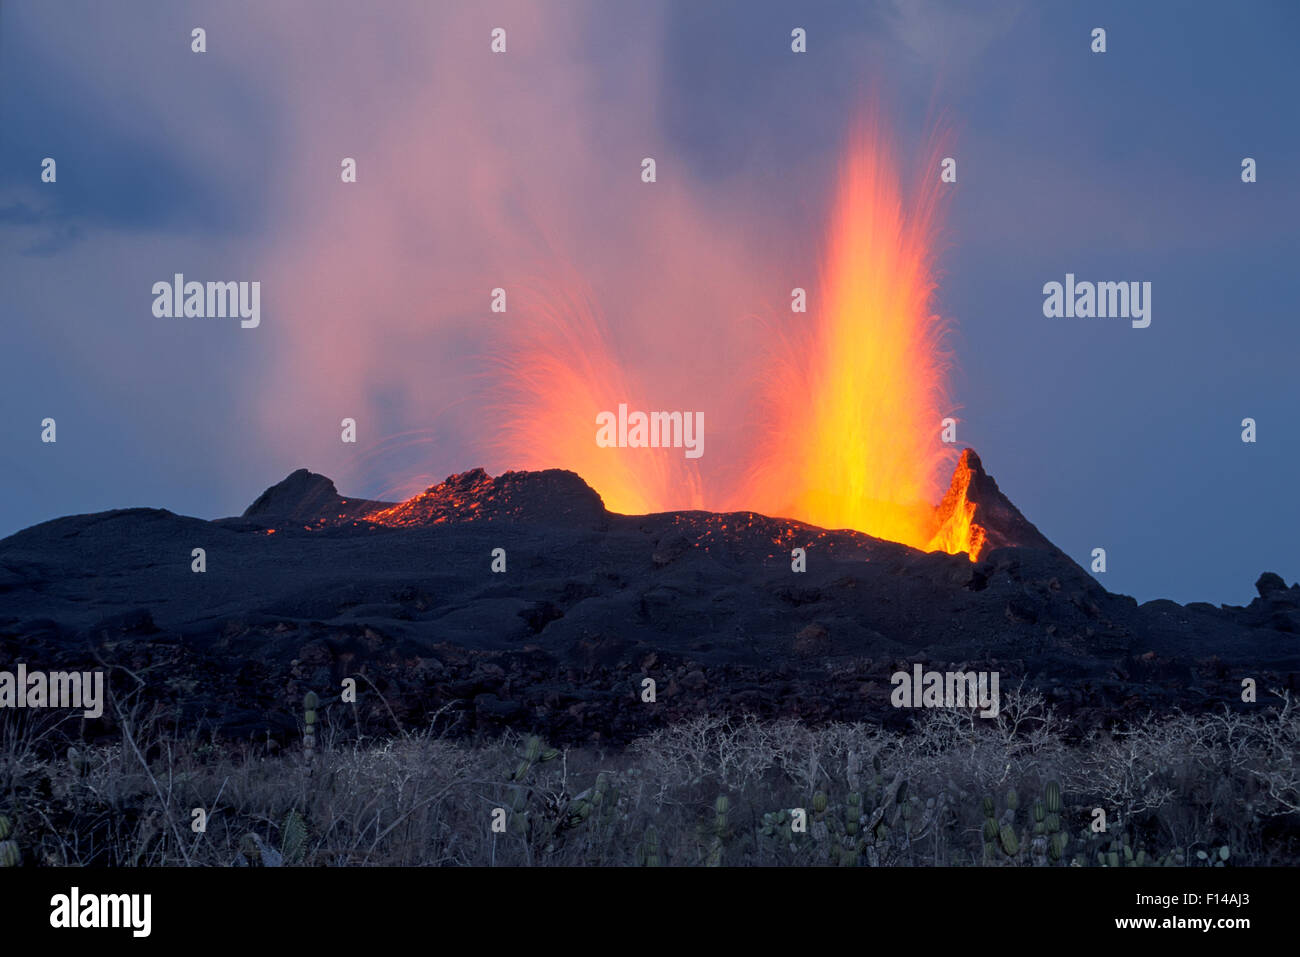 Spatter cone formation and lava fountaining from eruptive vent along radial fissure on flank of shield volcano, - Stock Image